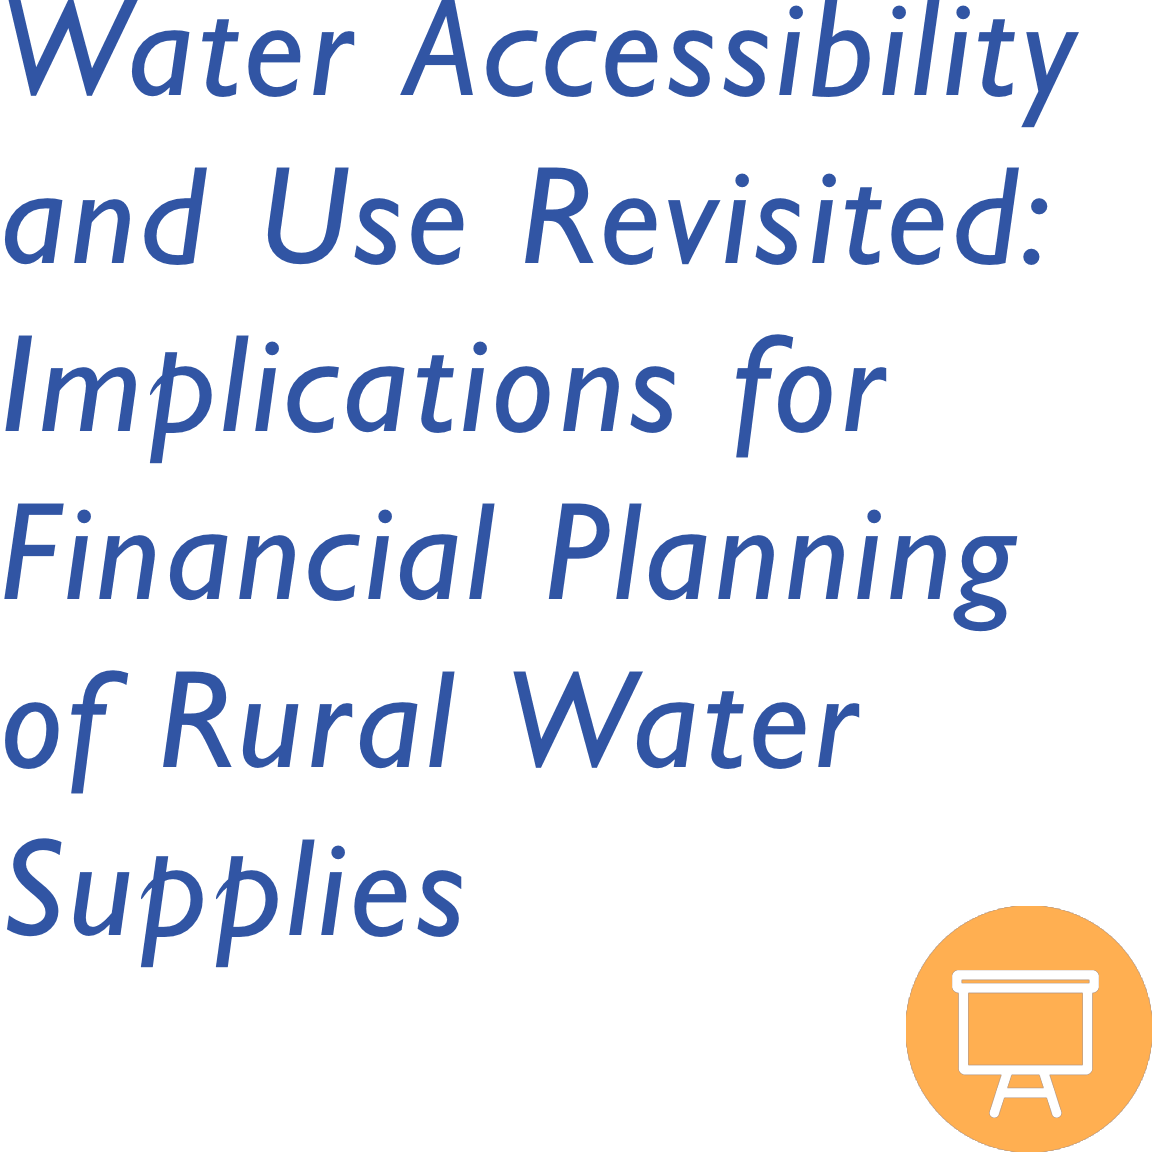 Water Accessibility and Use Revisited: Implications for Financial Planning of Rural Water Supplies